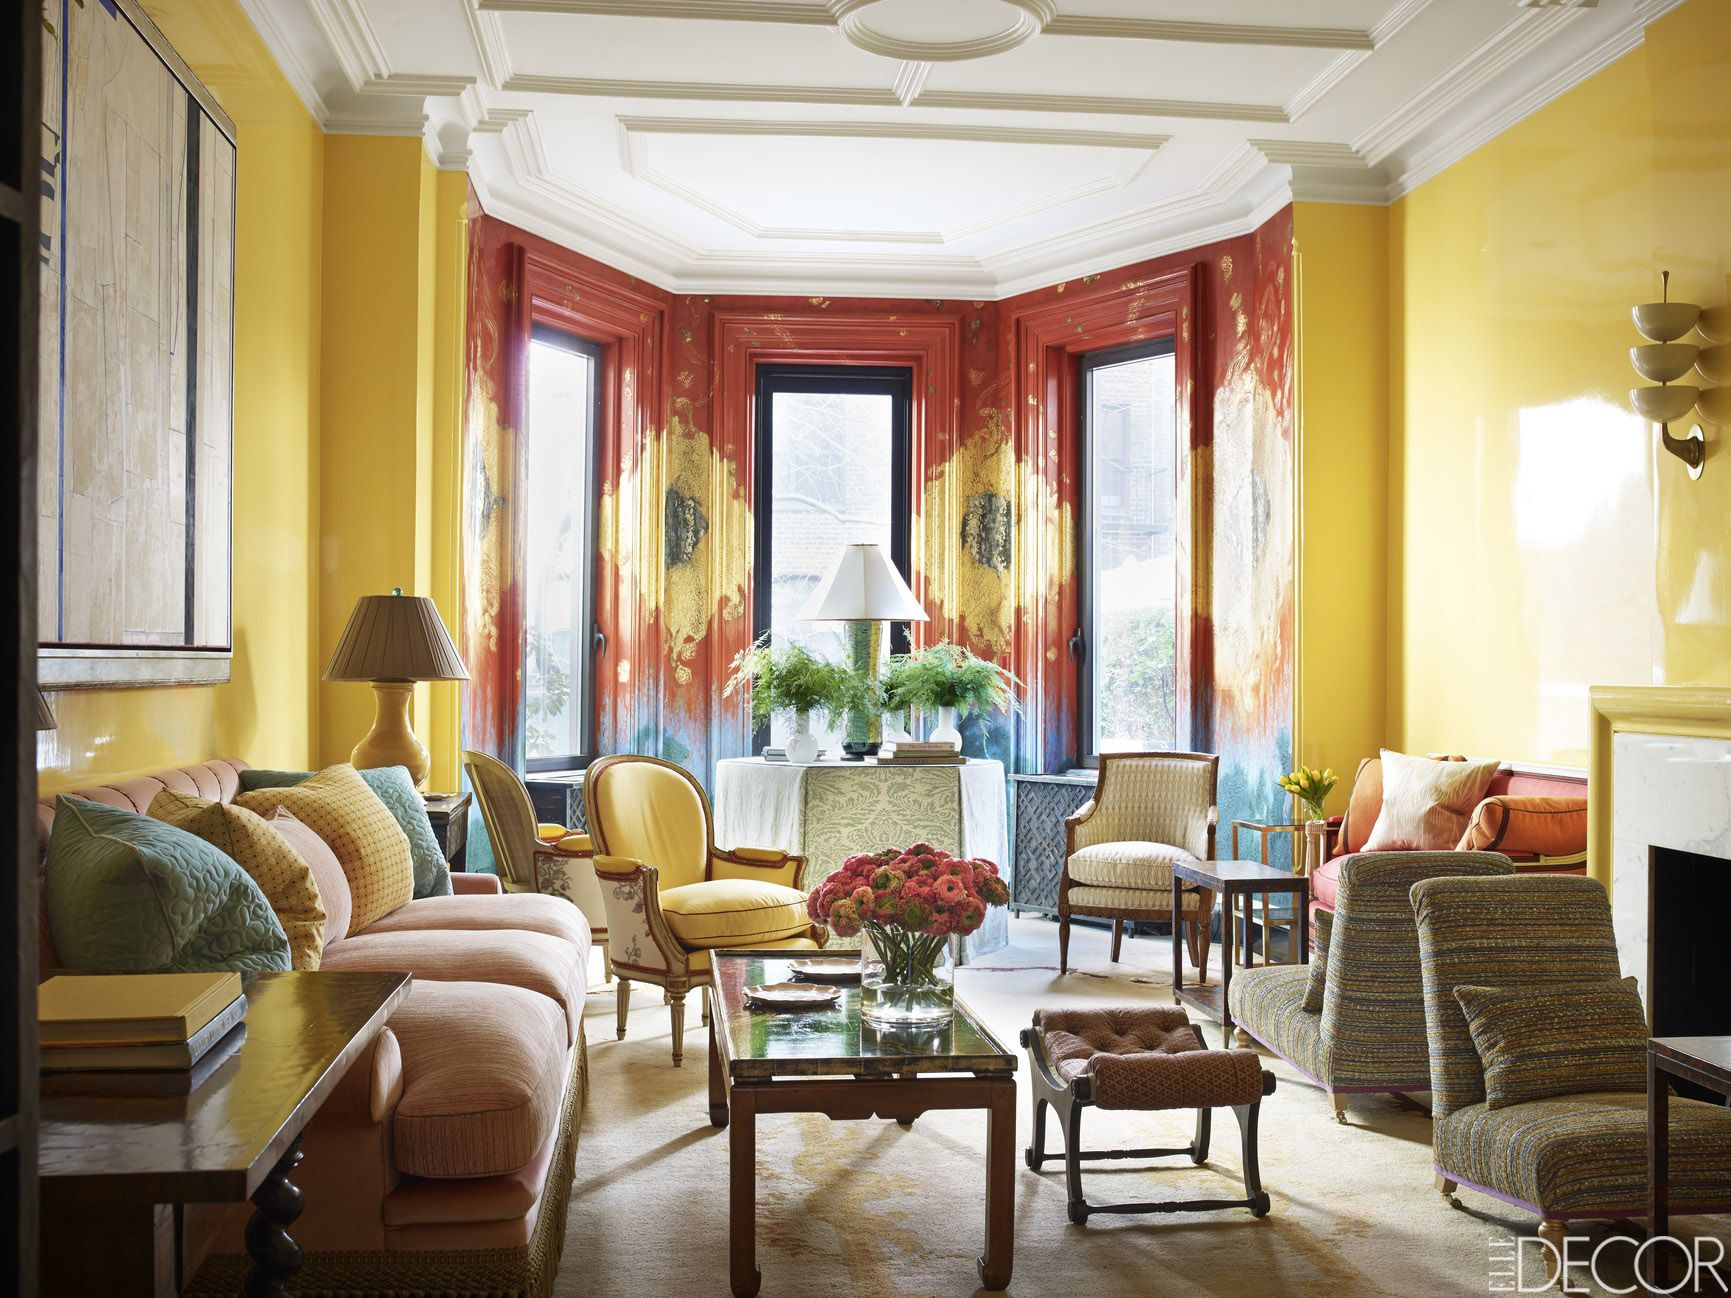 18 Of The Most Beautiful Rooms In New York City